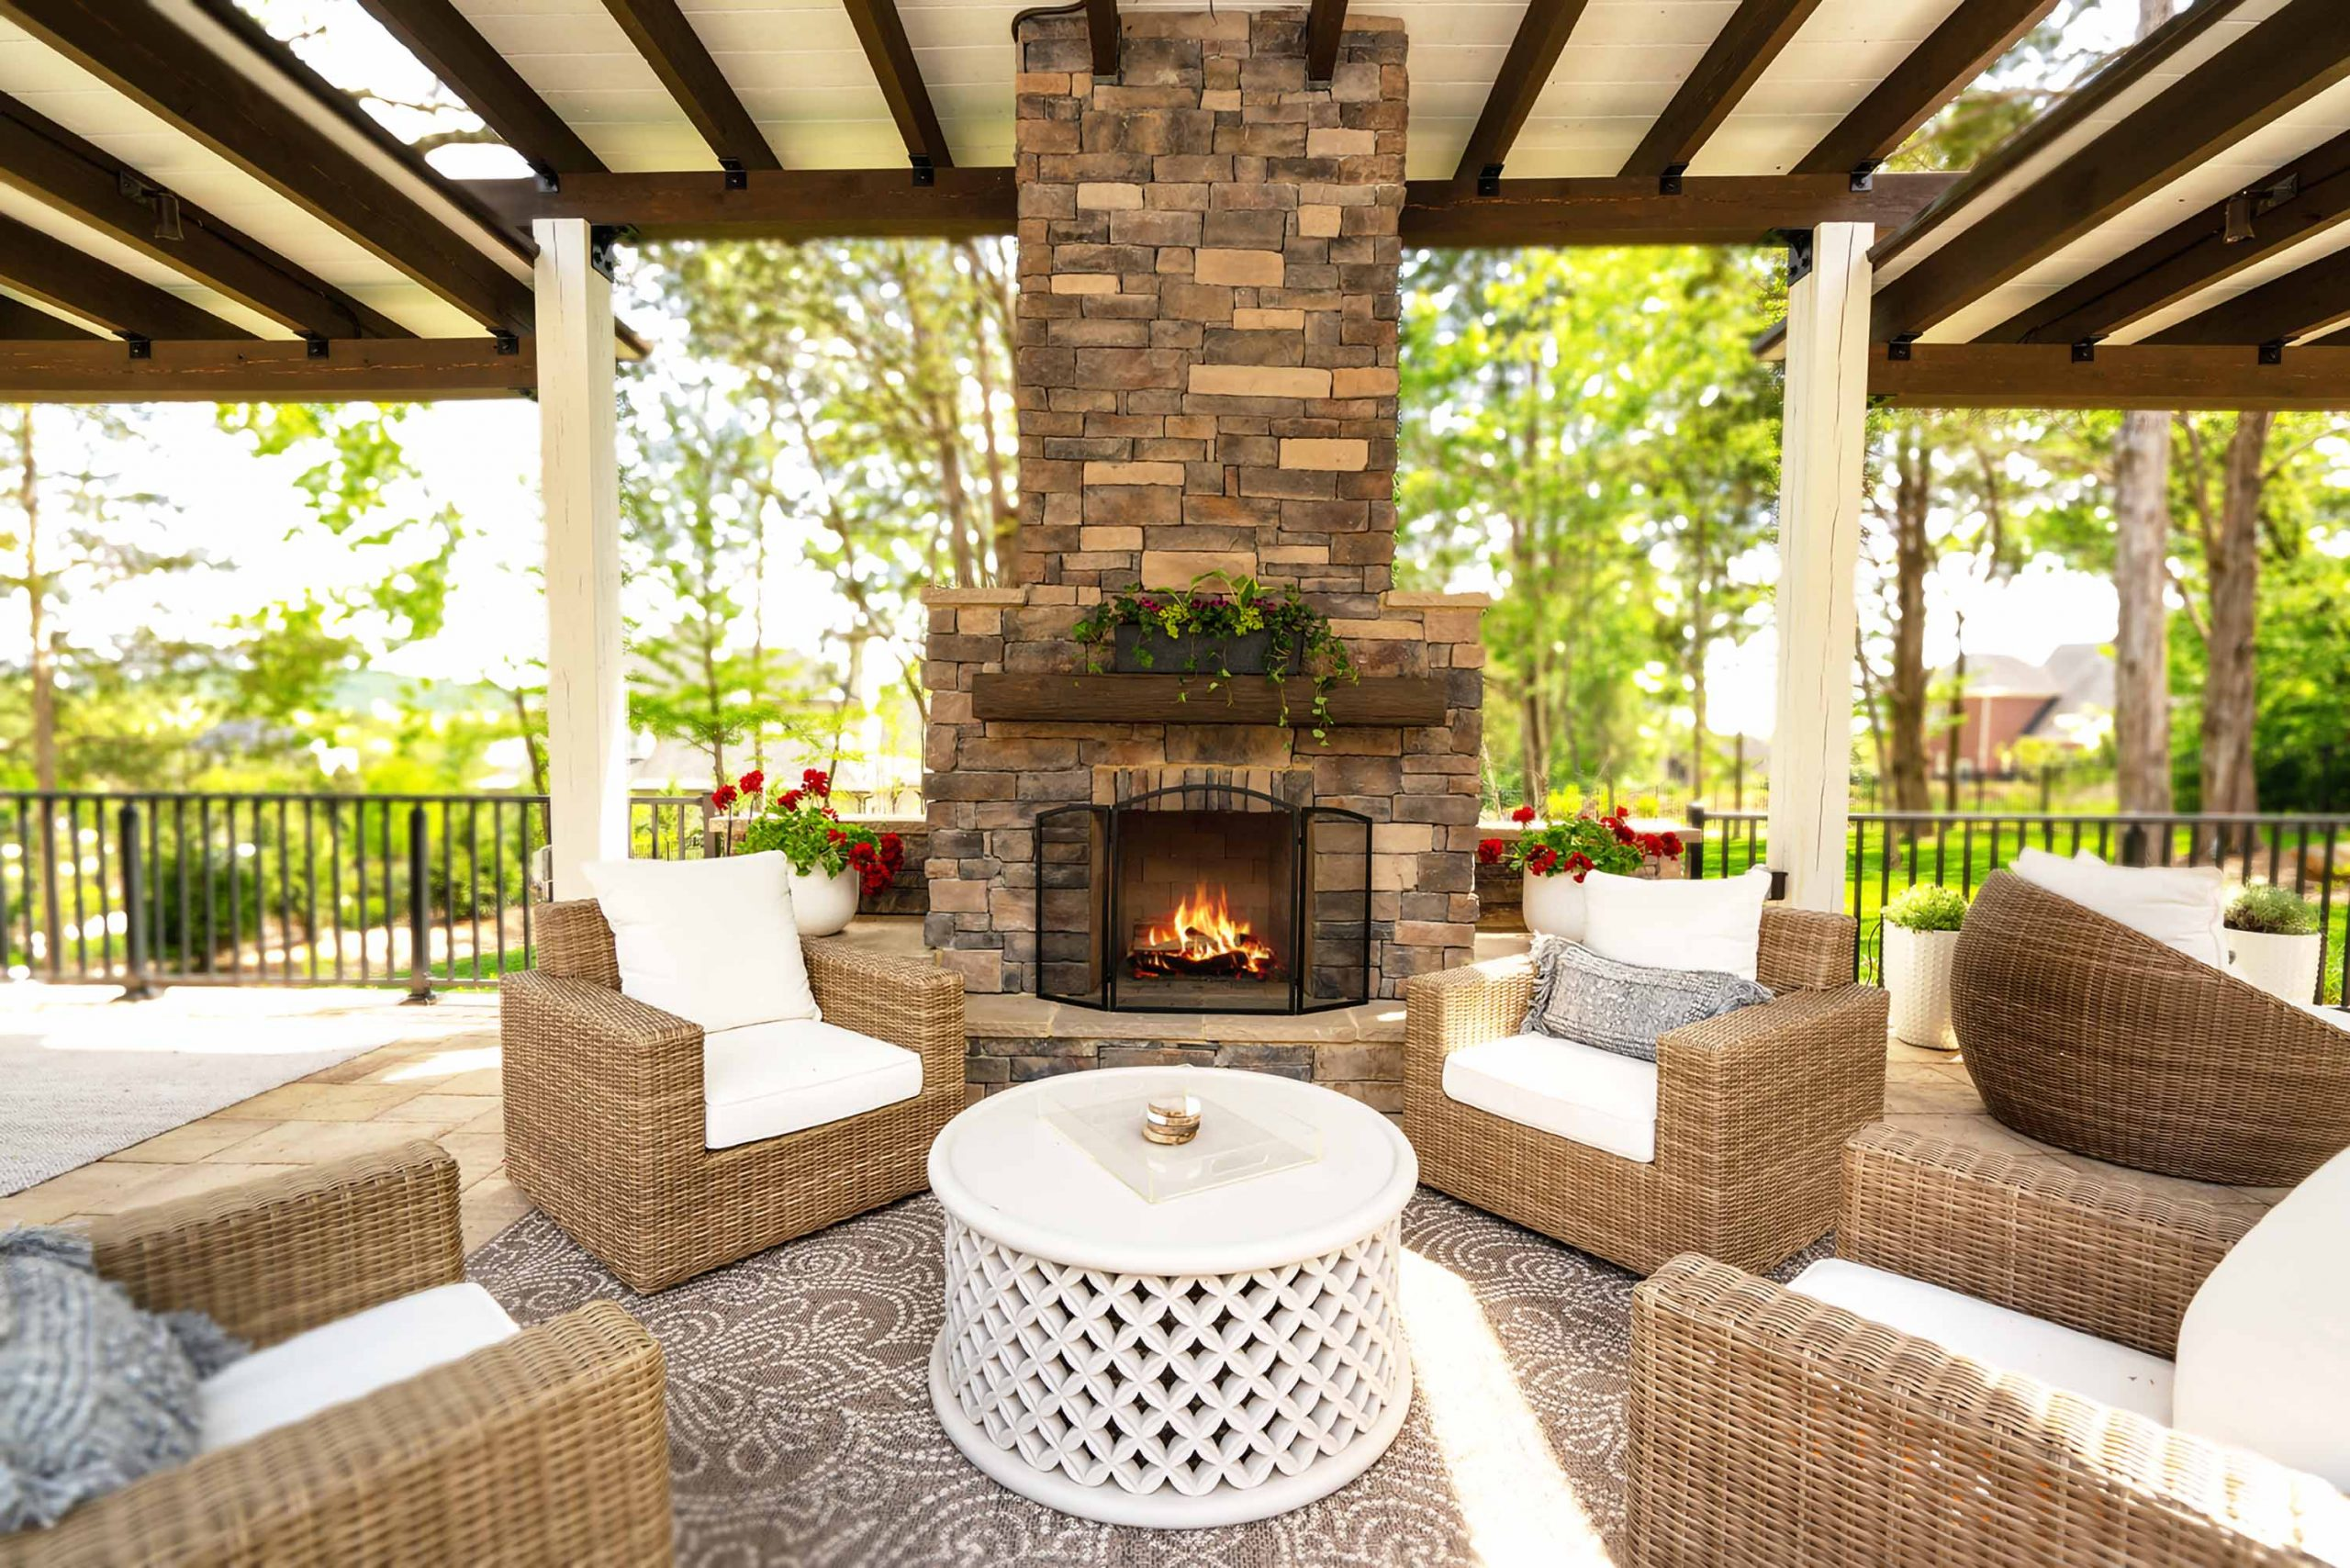 franklin stone hardscape patio pergola fireplace lockhart 1